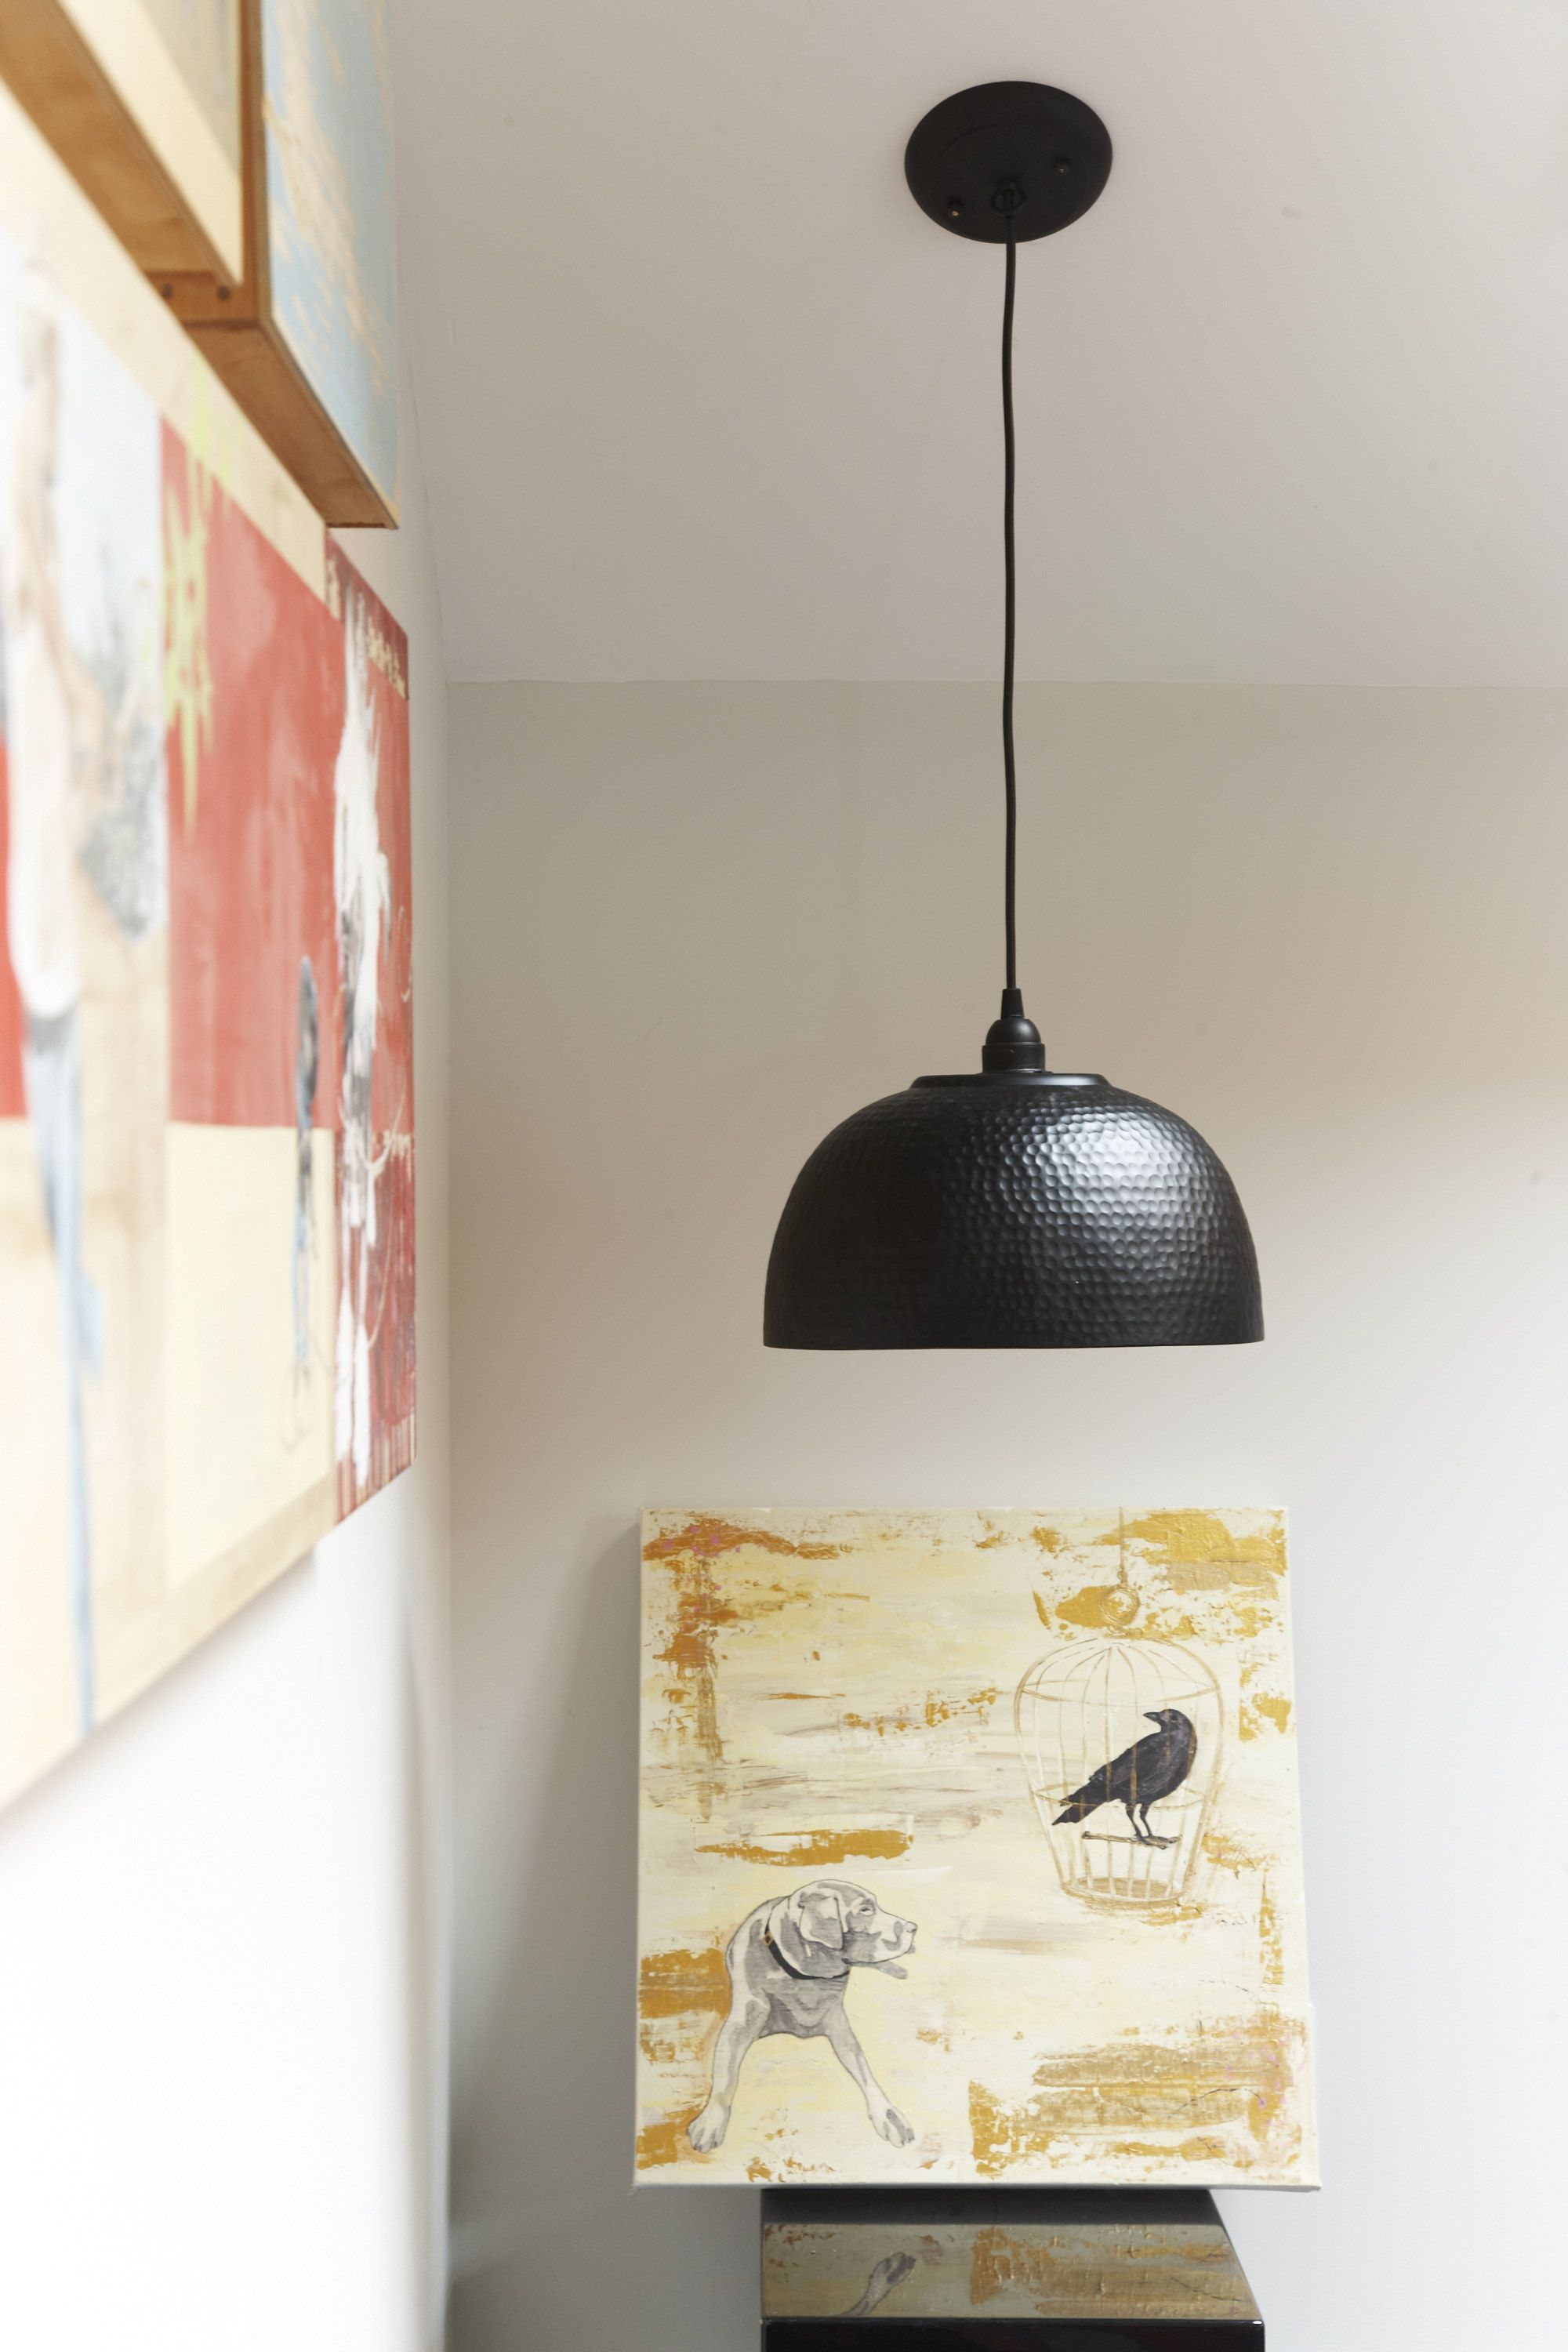 Diy Tom Dixon Inspired Lights From Ikea Bowls  The Marion